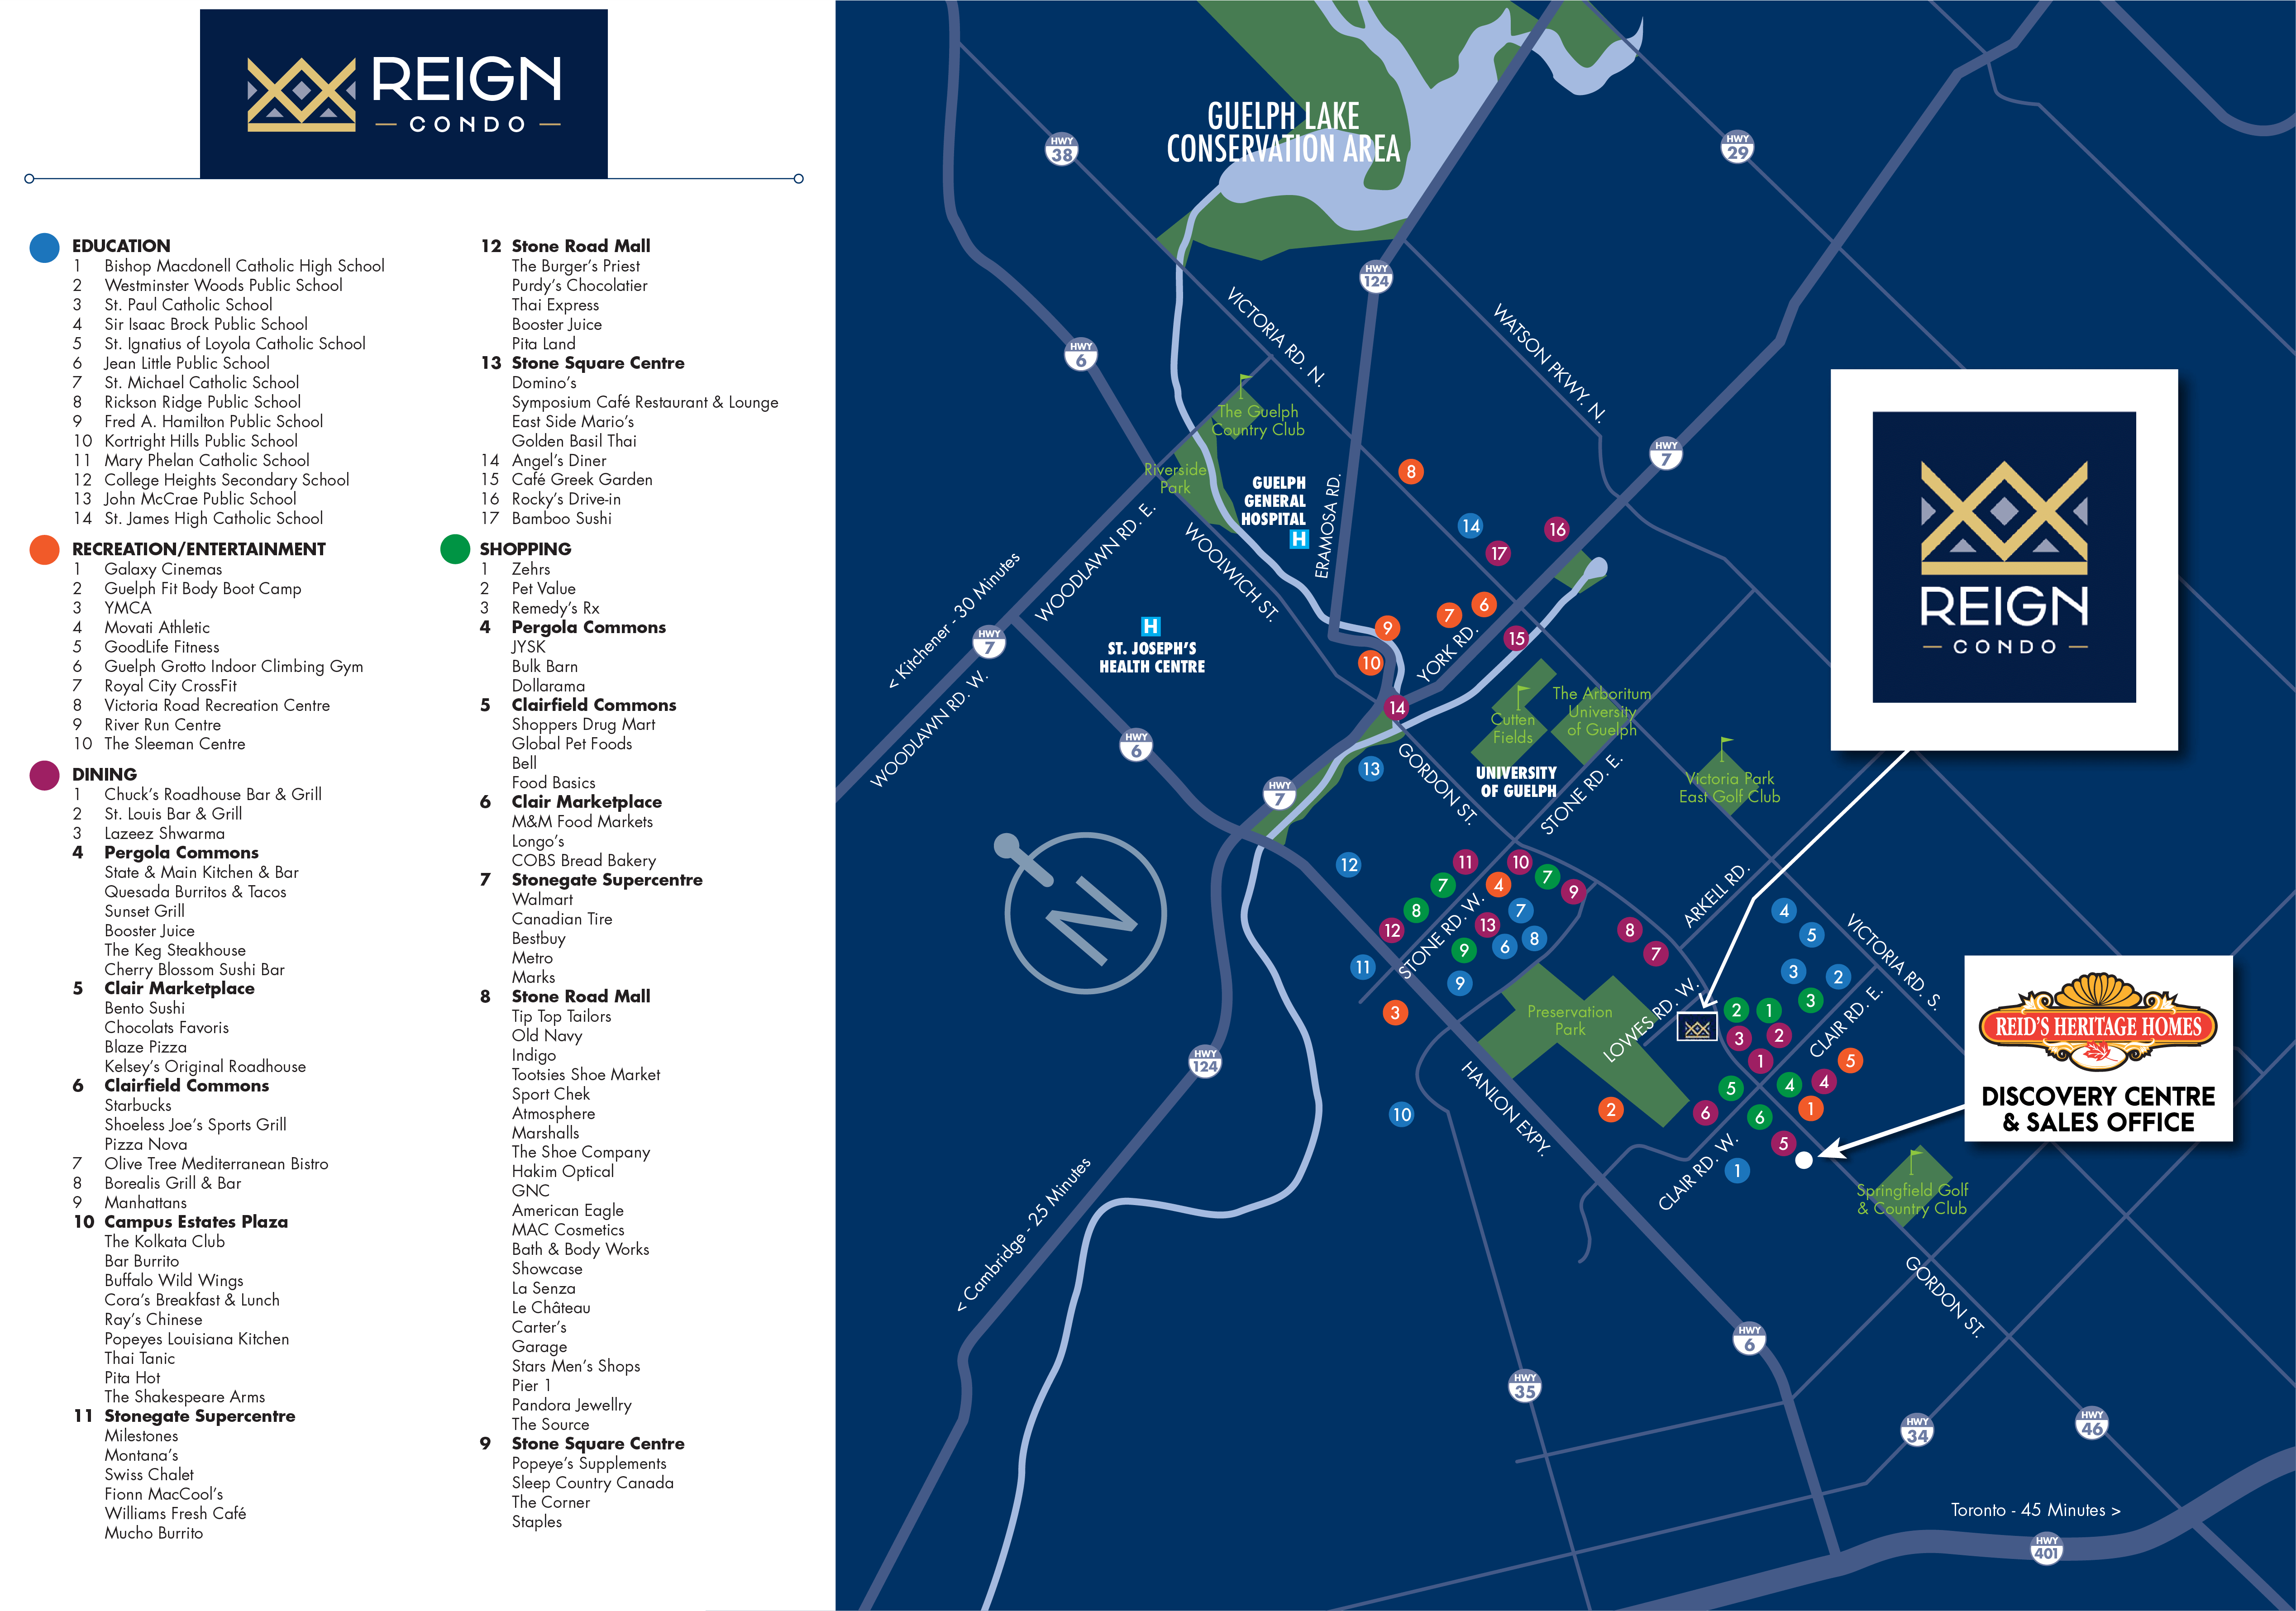 Map of area around Reign Condos in Guelph.